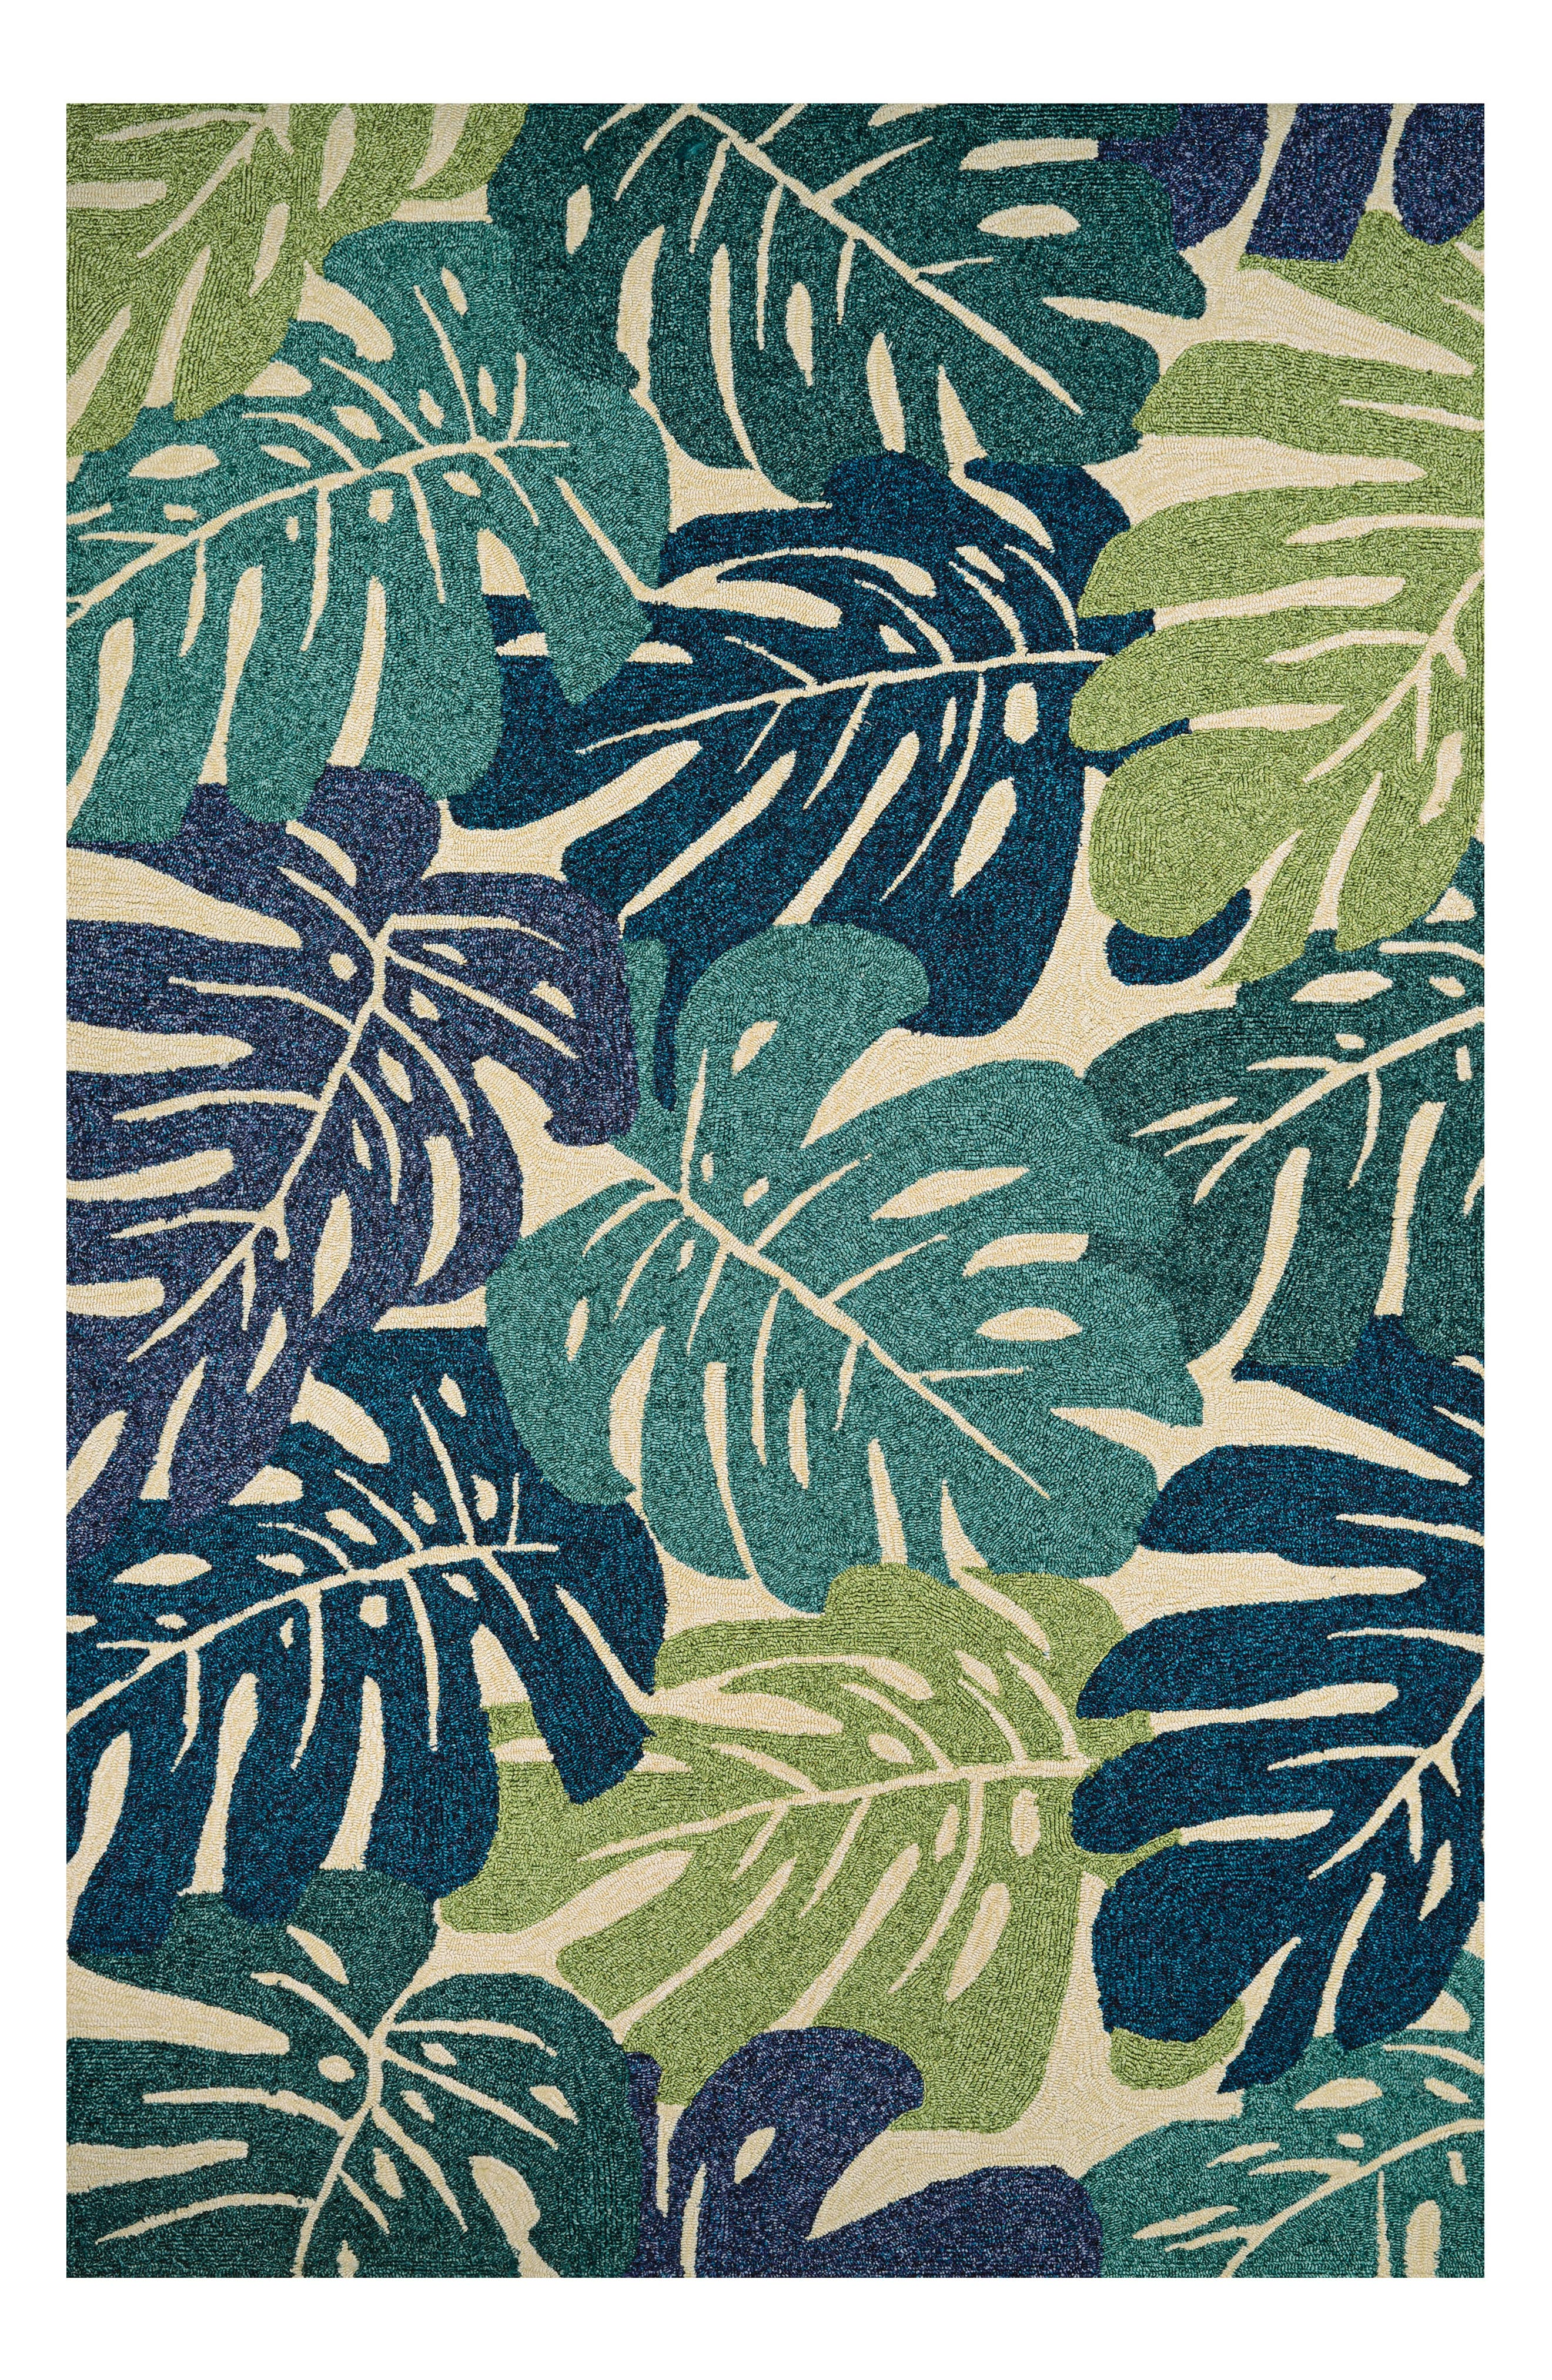 Monstera Indoor/Outdoor Rug,                             Main thumbnail 1, color,                             Blue/ Green